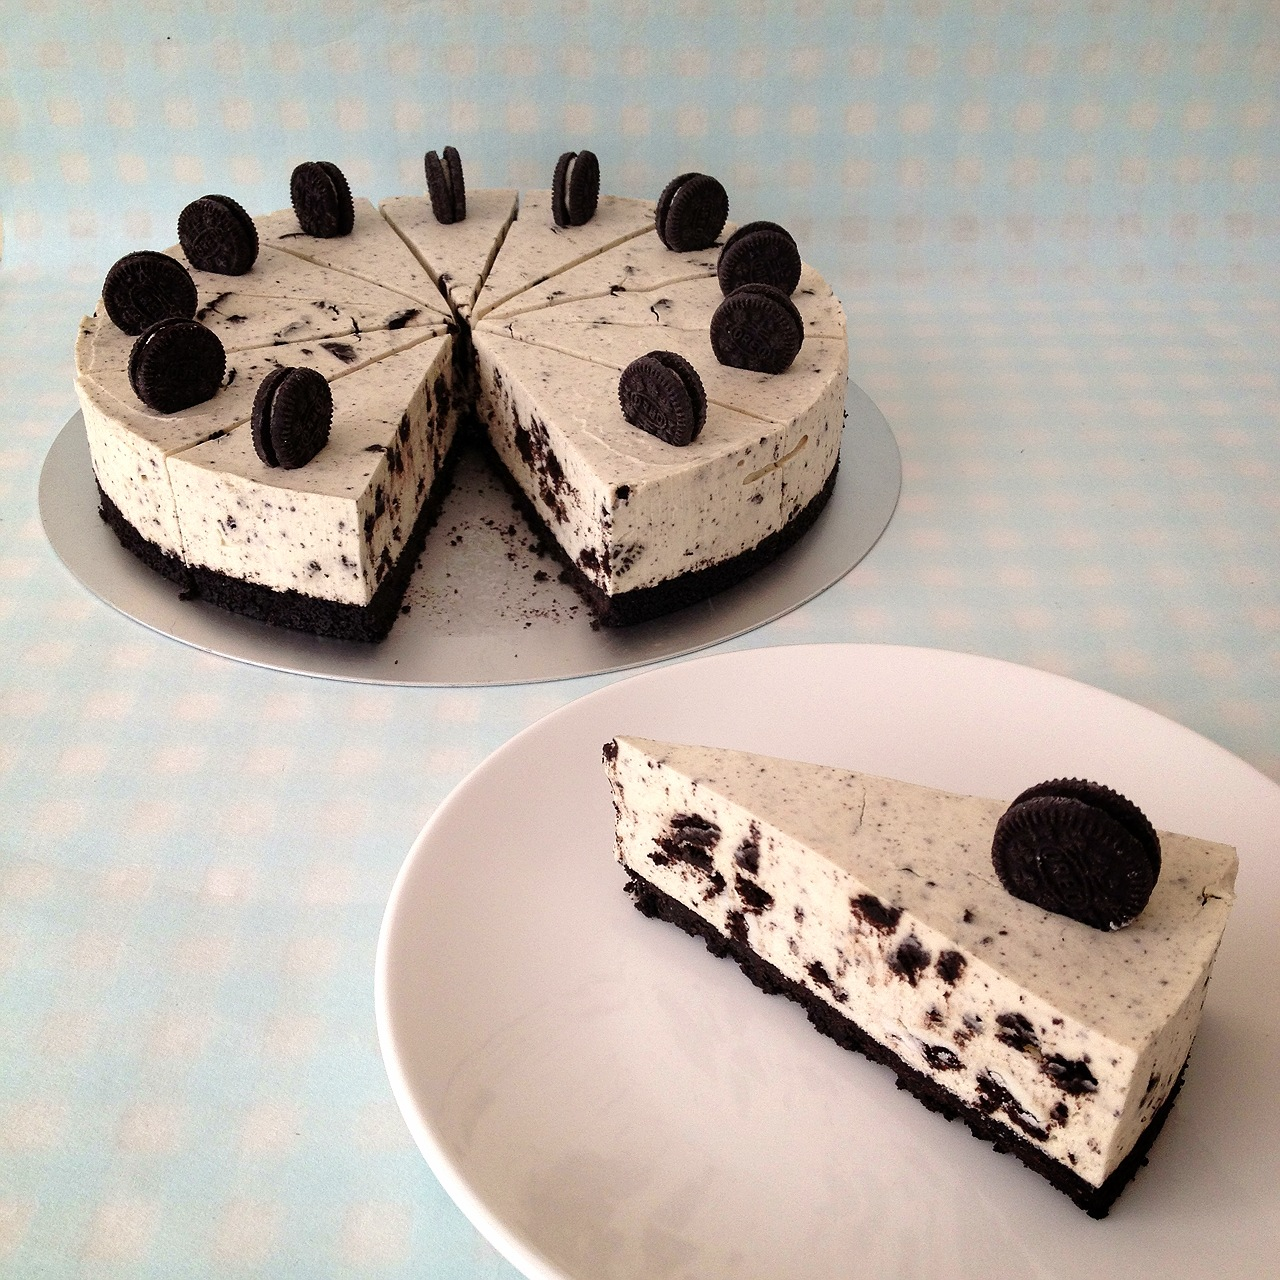 Another simple and easy cheesecake to make. I love Cookies & Cream ...